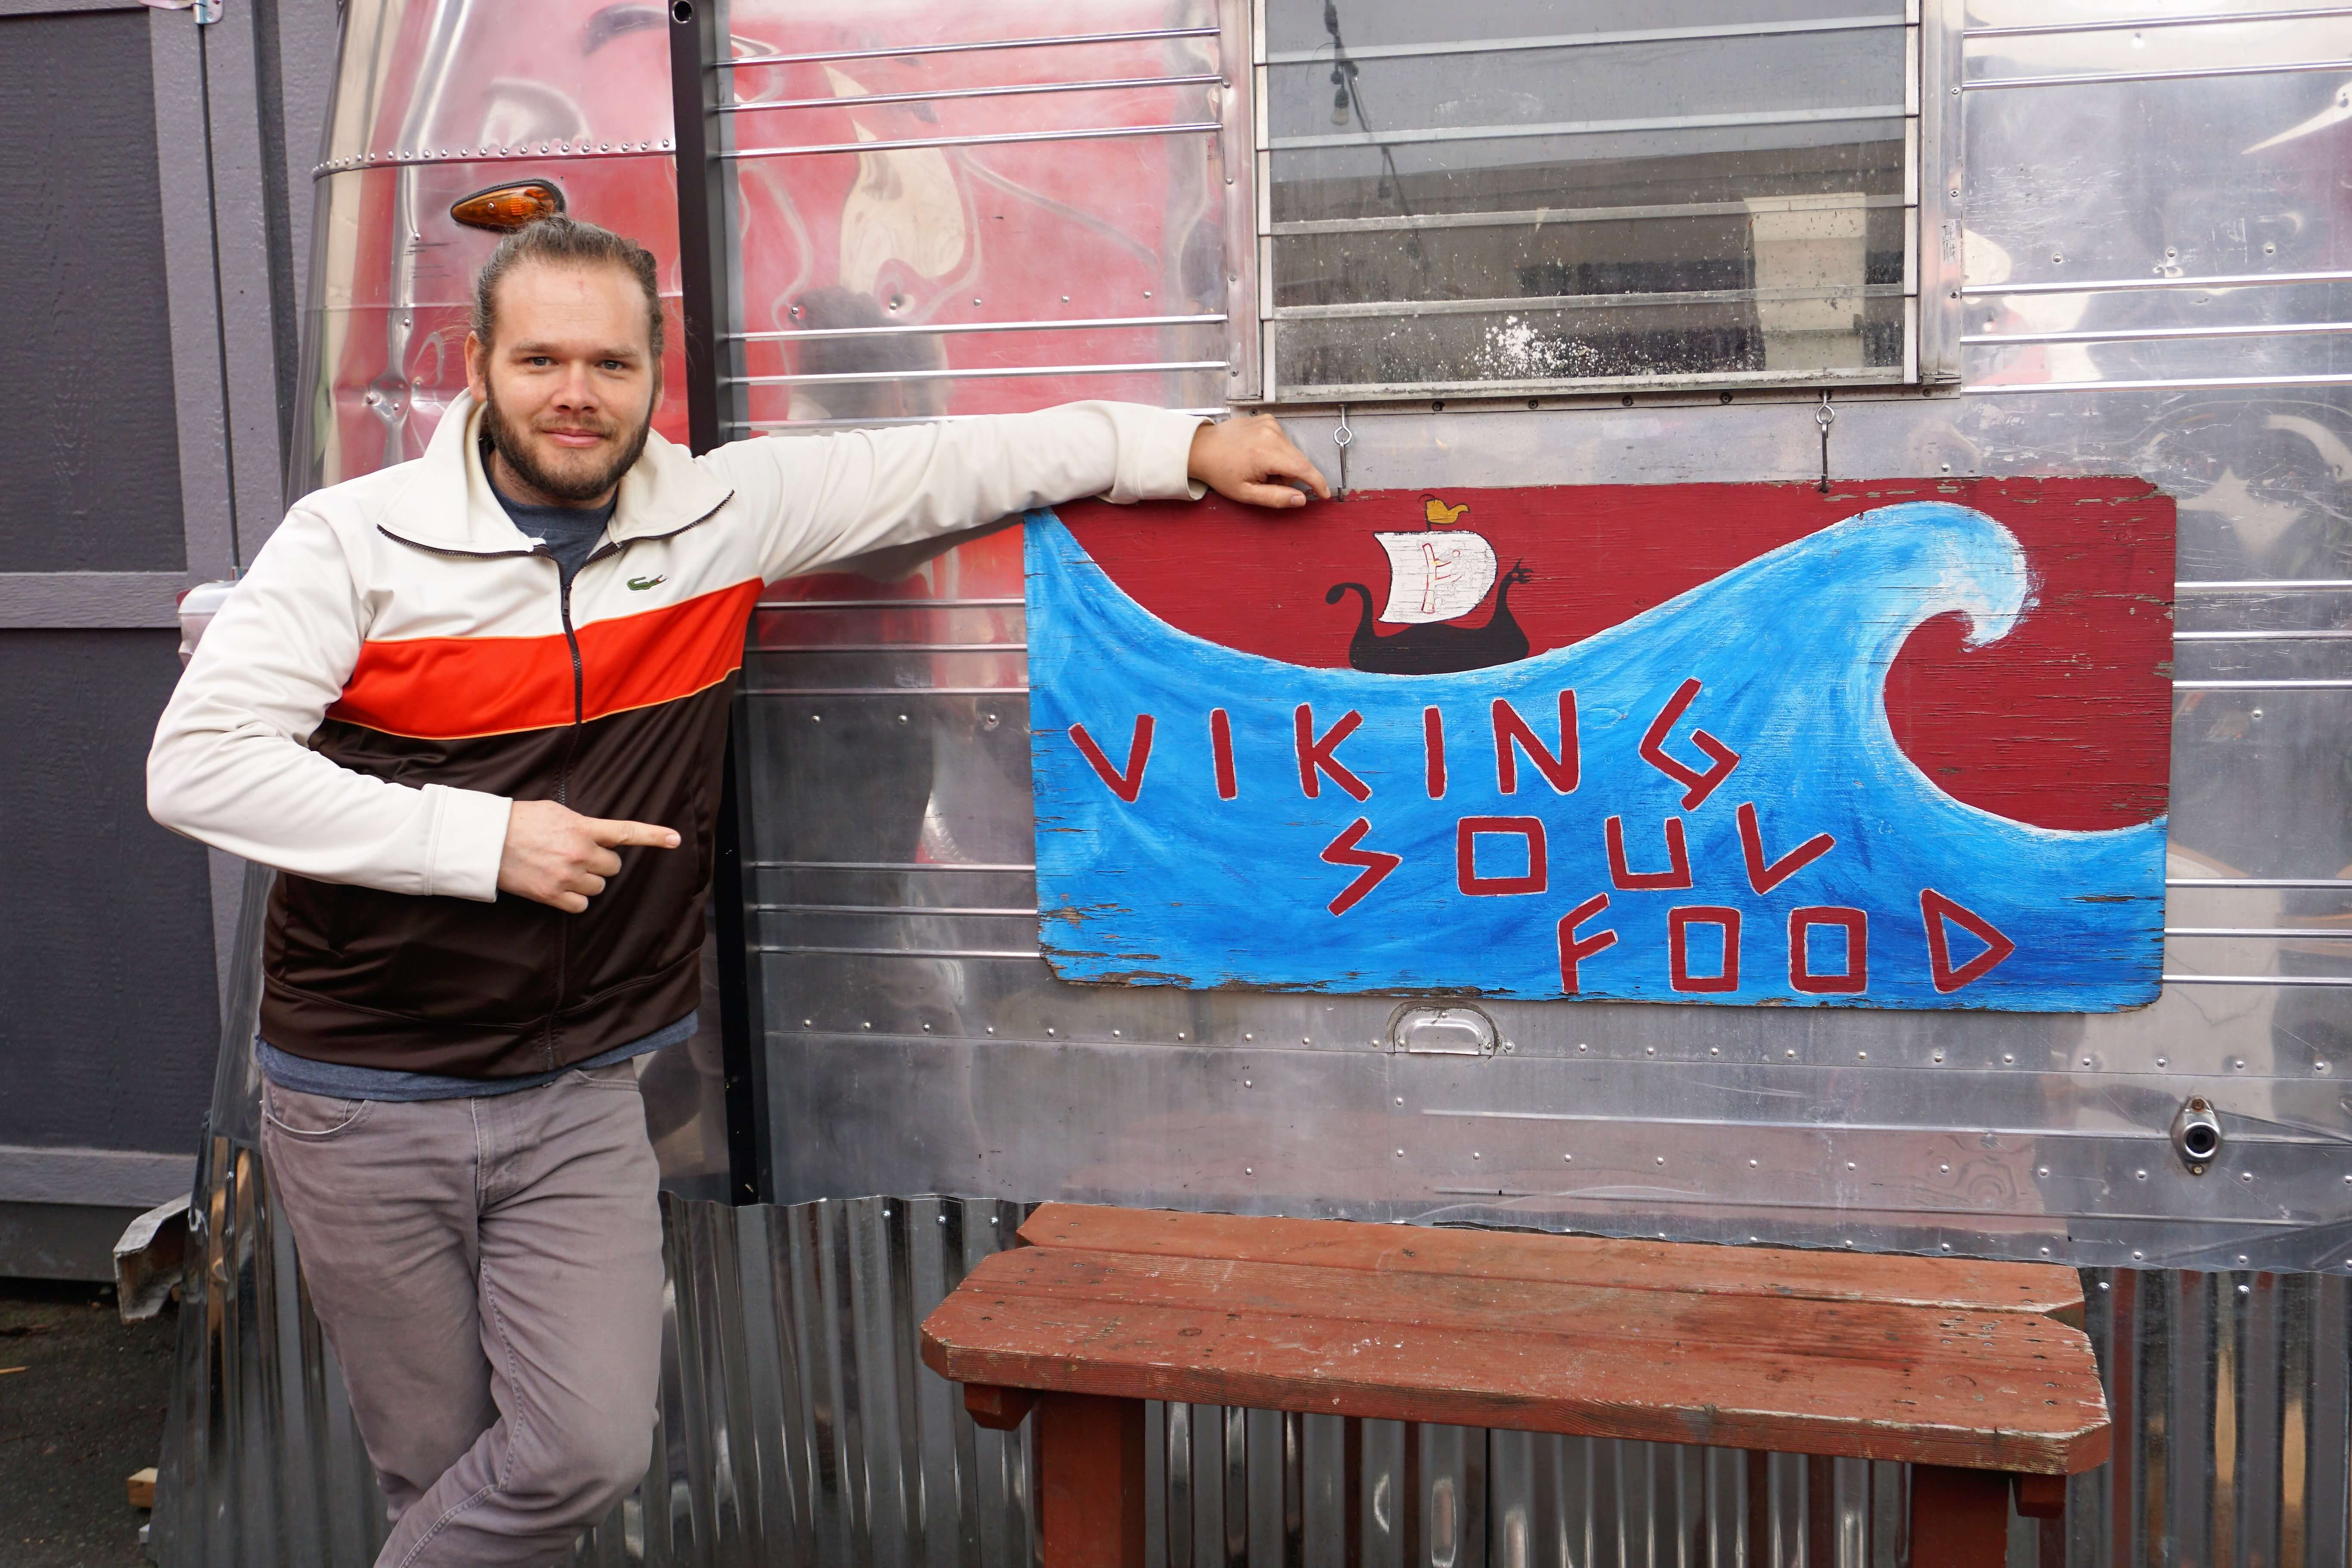 Erik posing in front of an unusual food truck, Viking Soul Food